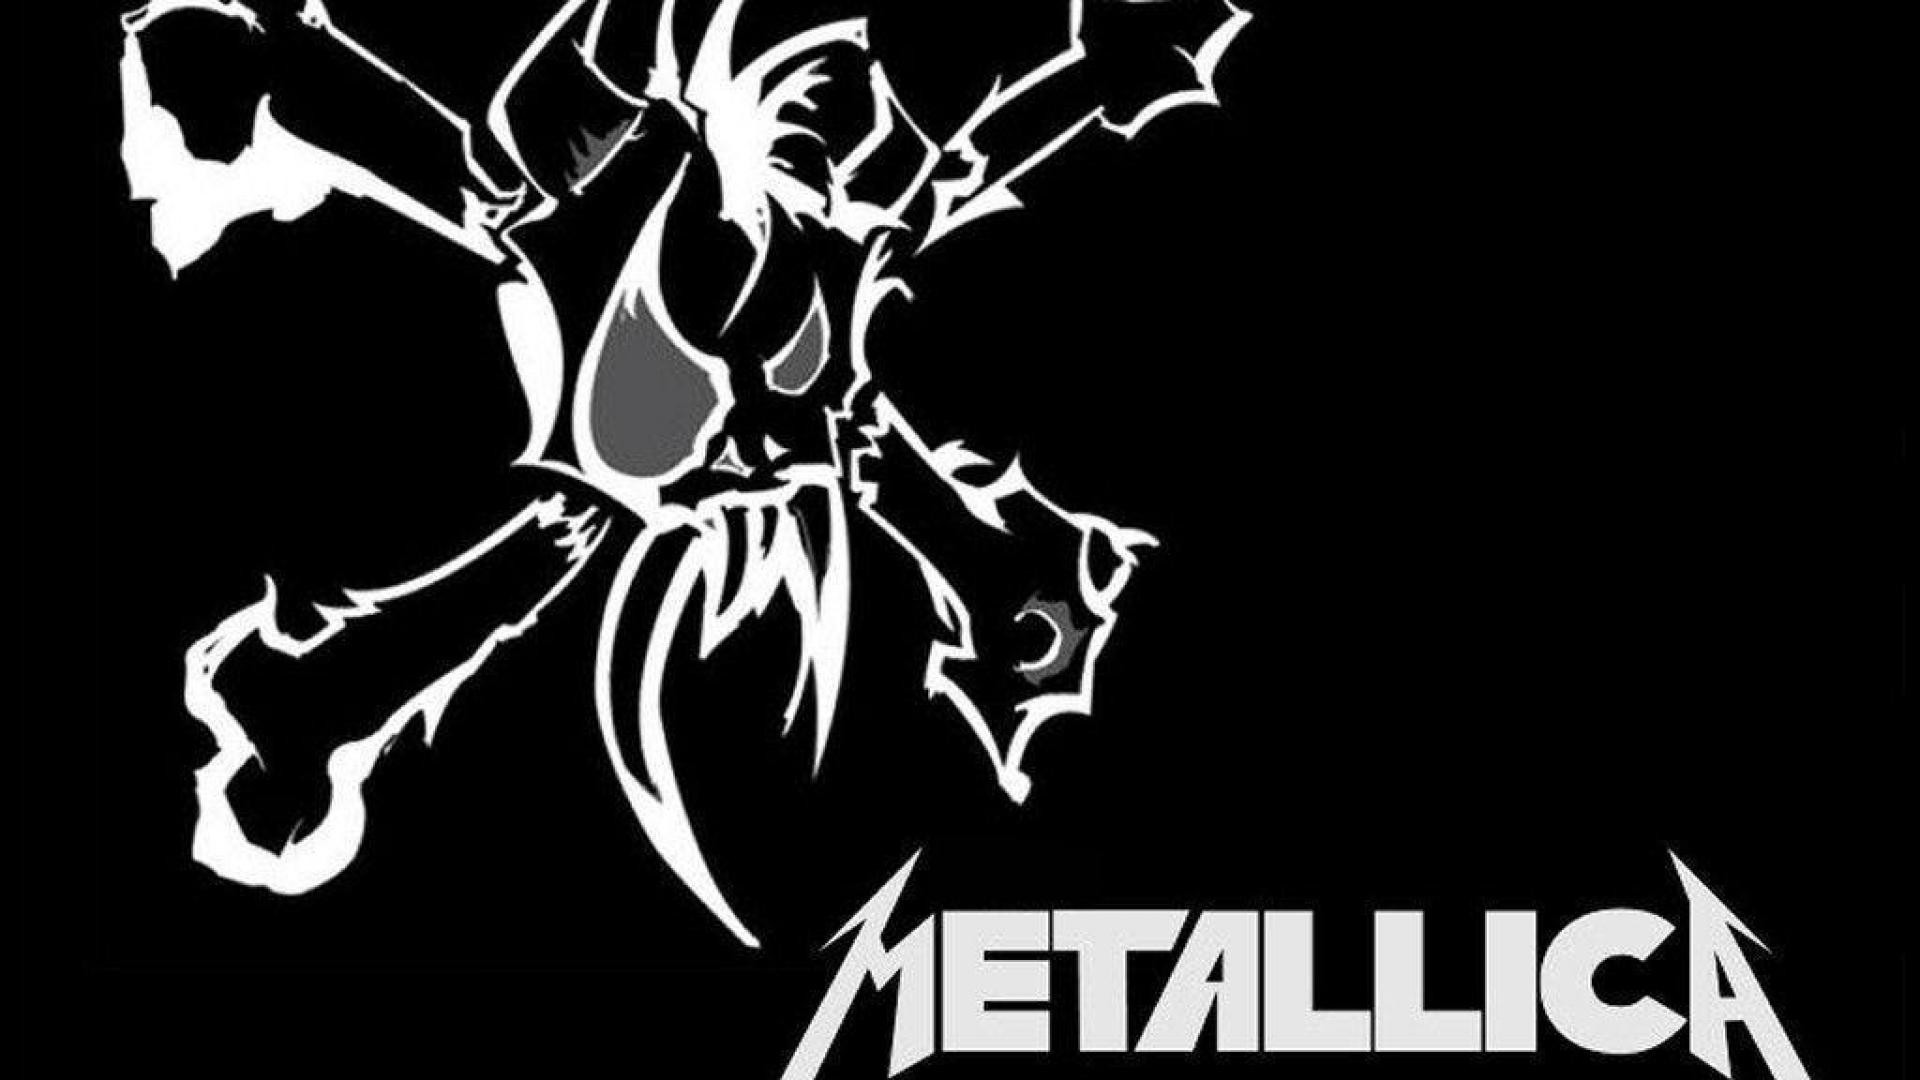 1920x1080 Metallica HD Wallpapers and Backgrounds 1920×1080 Metalica Wallpapers (40  Wallpapers) | Adorable